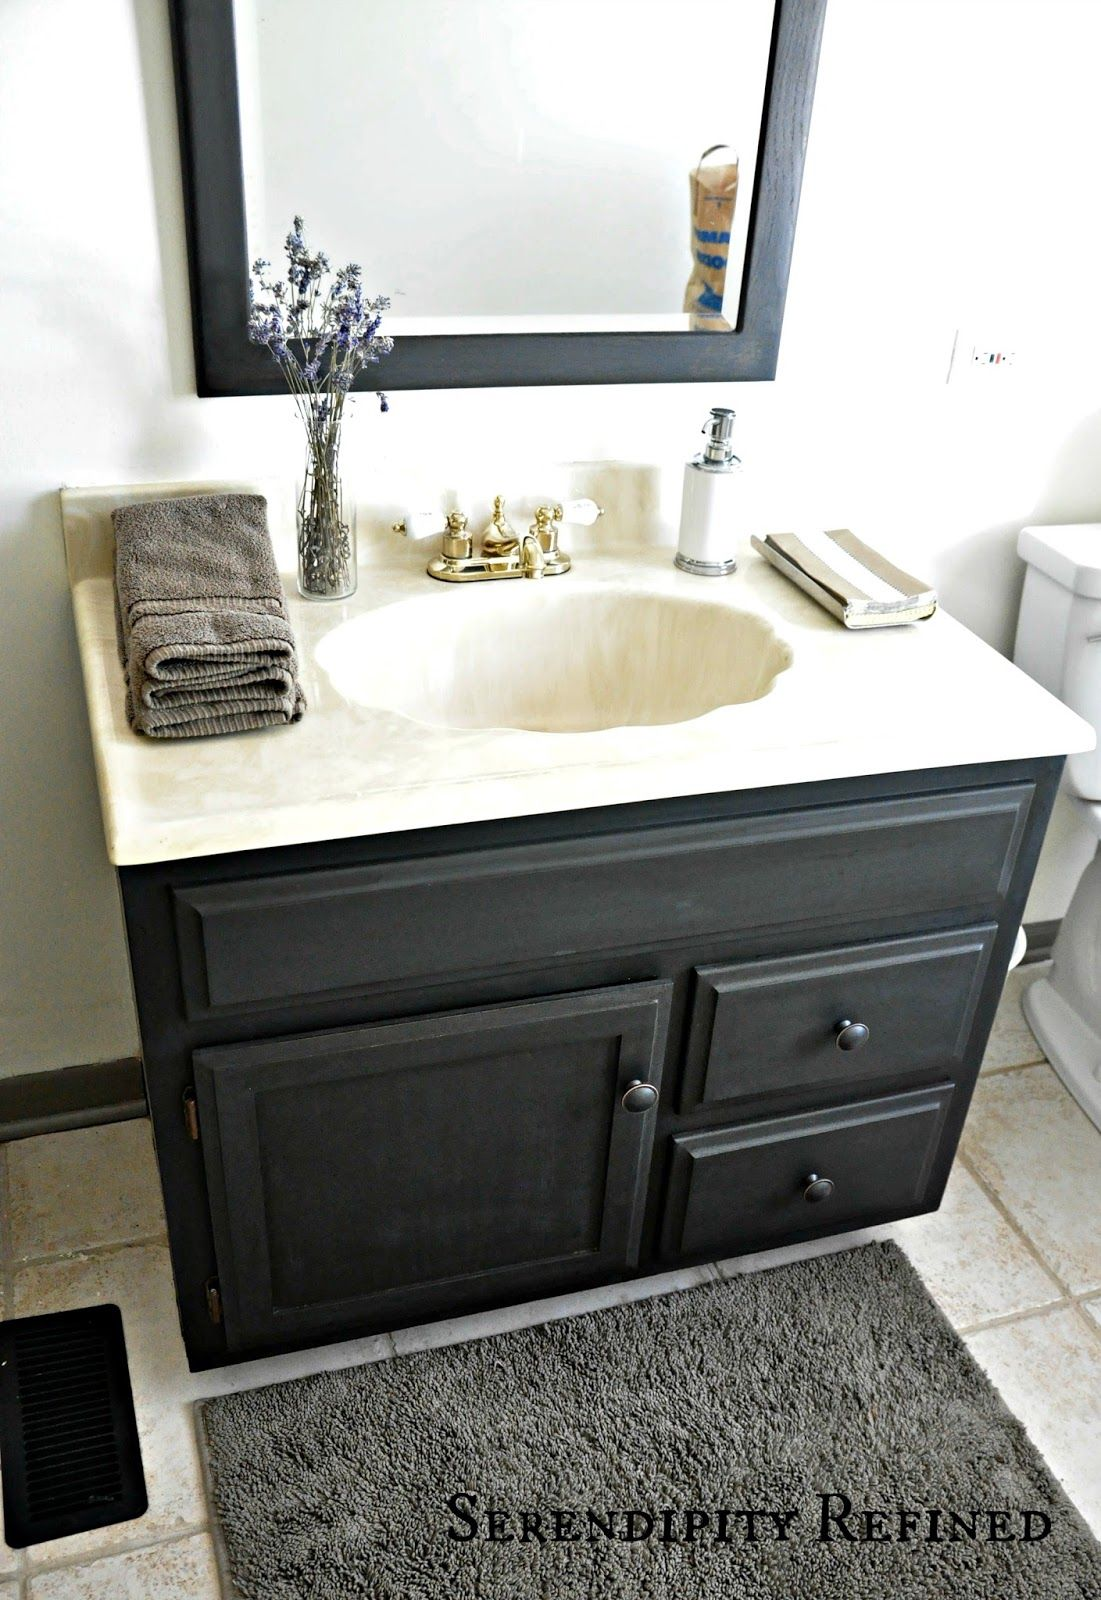 Serendipity Refined Blog How To Update Oak And Brass Bathroom - Can you spray paint bathroom fixtures